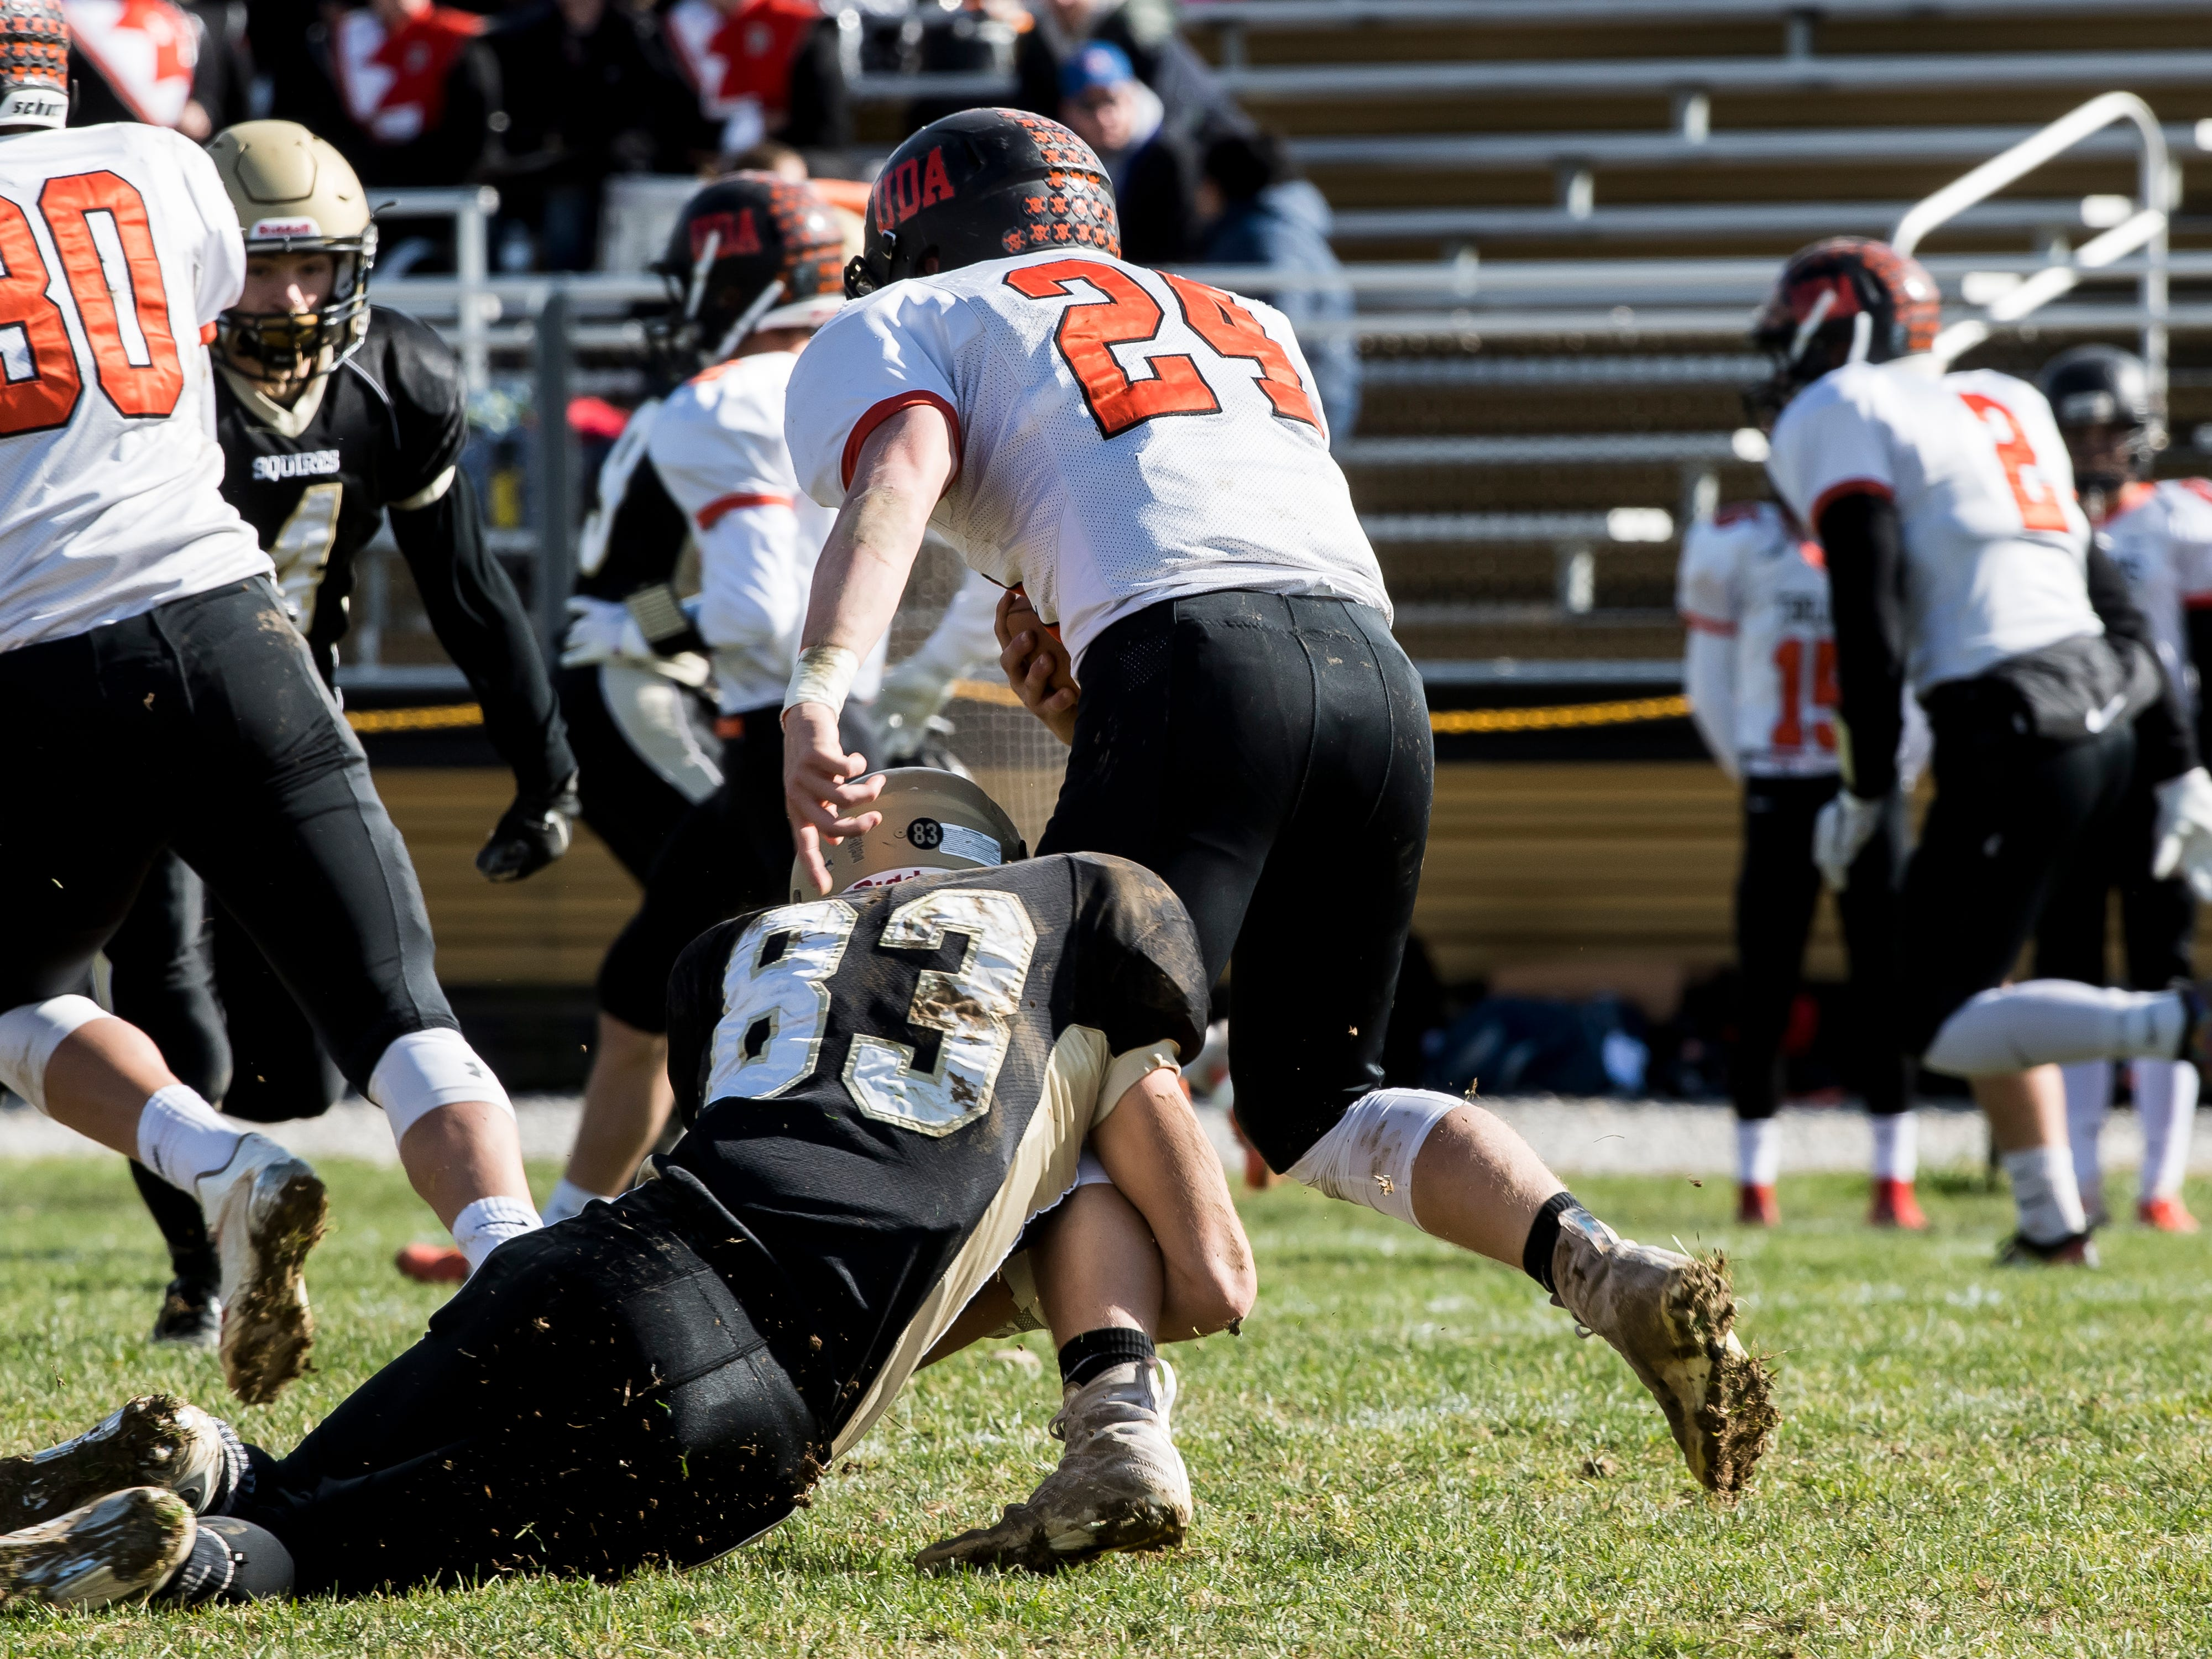 Delone Catholic's Gabe Hernandez (83) tackles Upper Dauphin's Jake Ramberger (24) during a District III Class 2A semifinal game on Saturday, November 3, 2018. The Squires won 48-23.